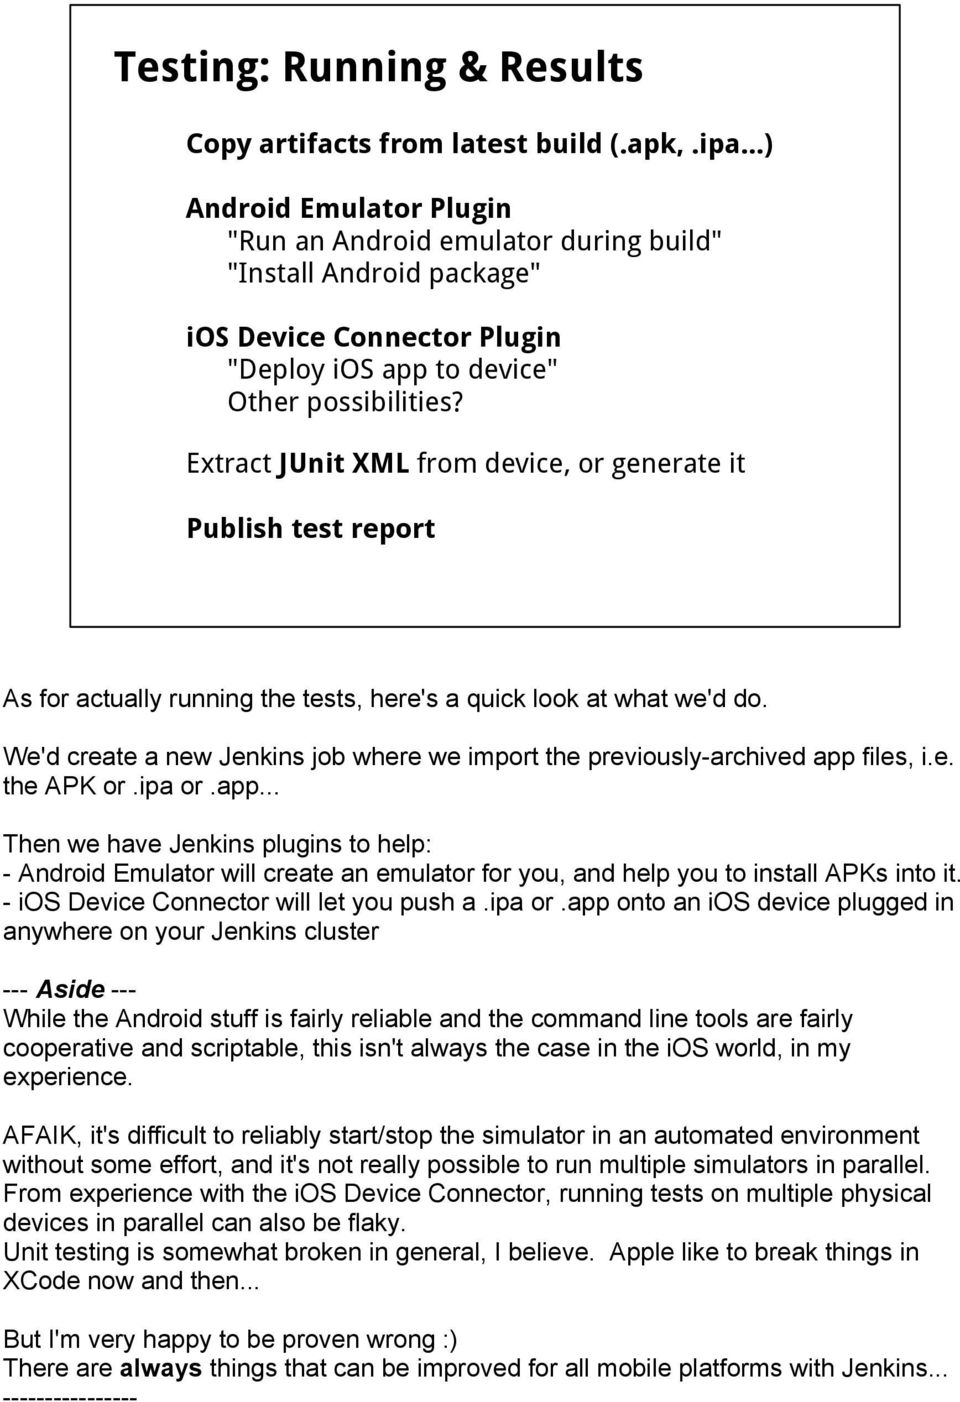 Building, testing and deploying mobile apps with Jenkins & friends - PDF